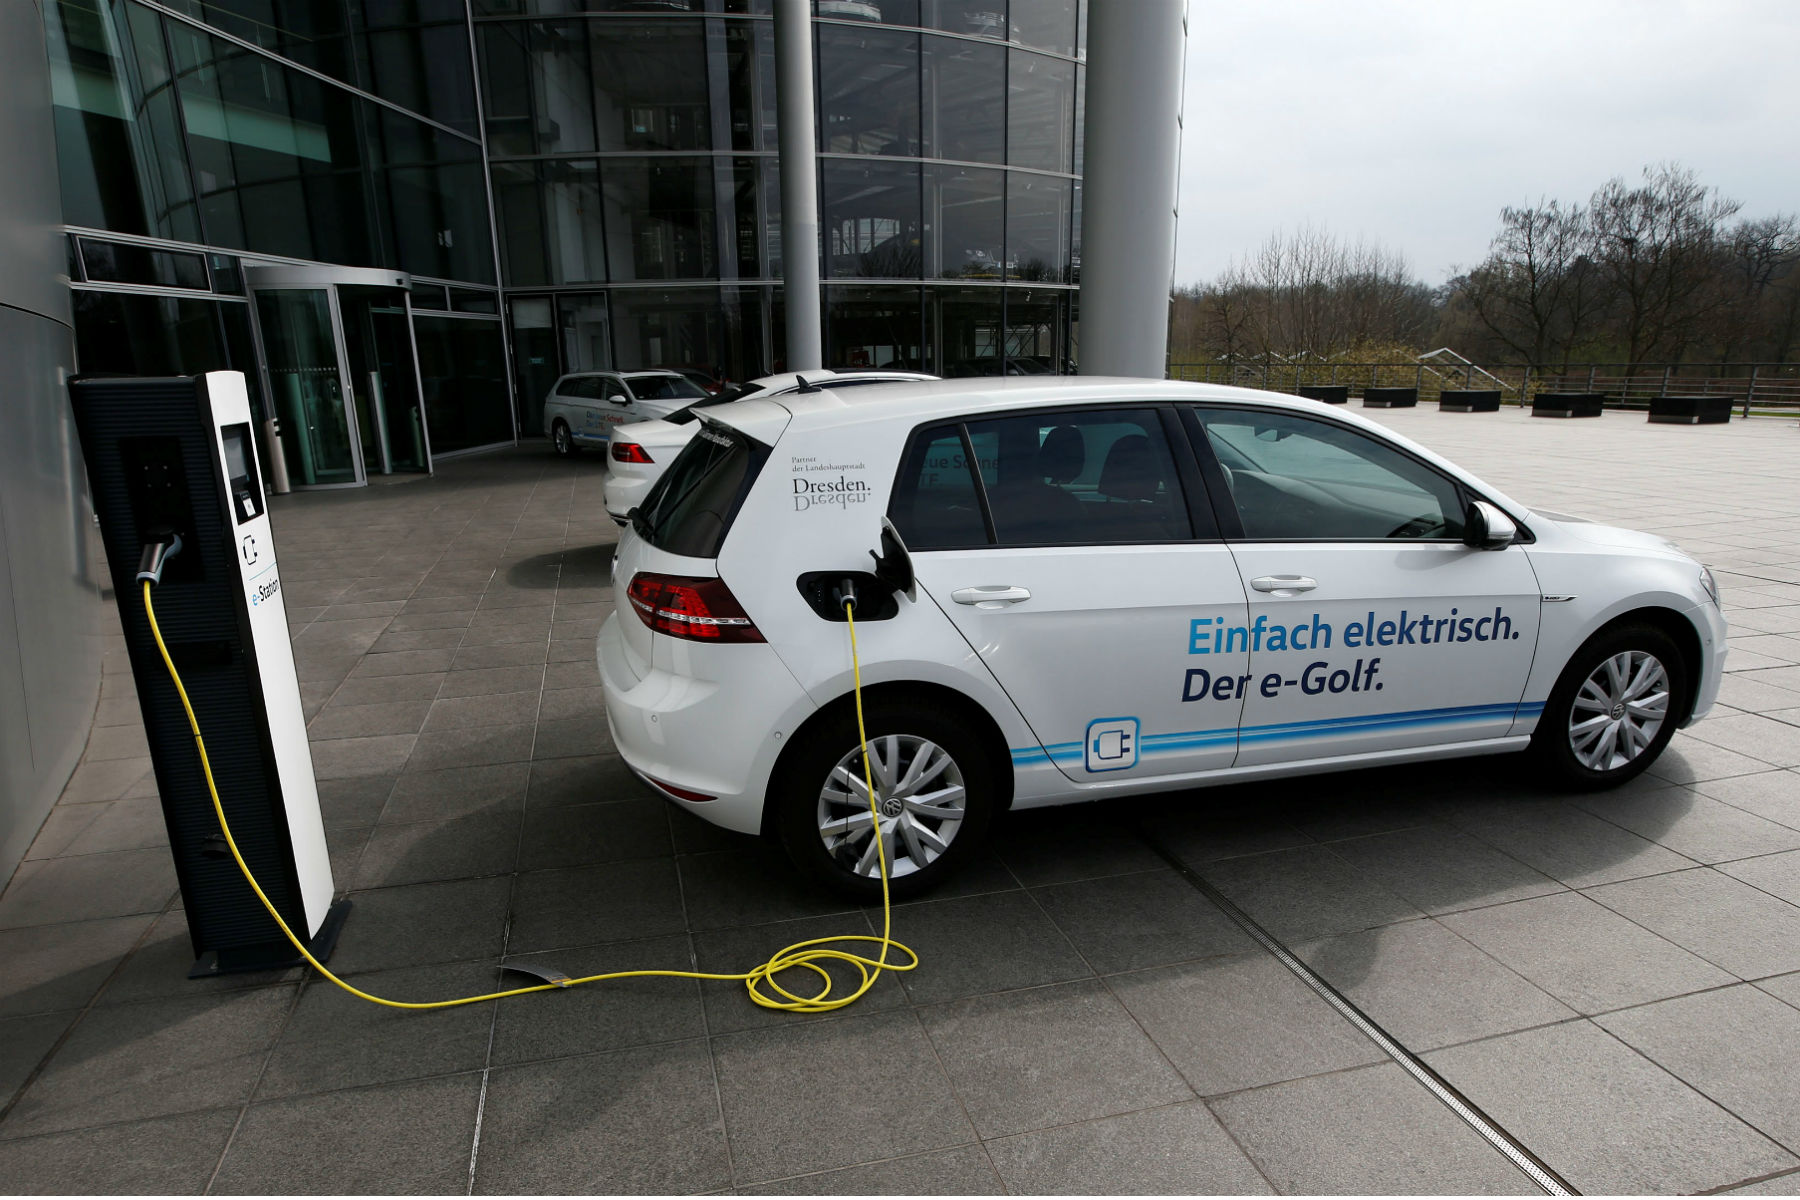 main-79687679-Reuters-VW-Volkswagen-Tesla-Model-3-e-Golf-electric-car-charges-outside-the-Transparent-Factory-in-Dresden